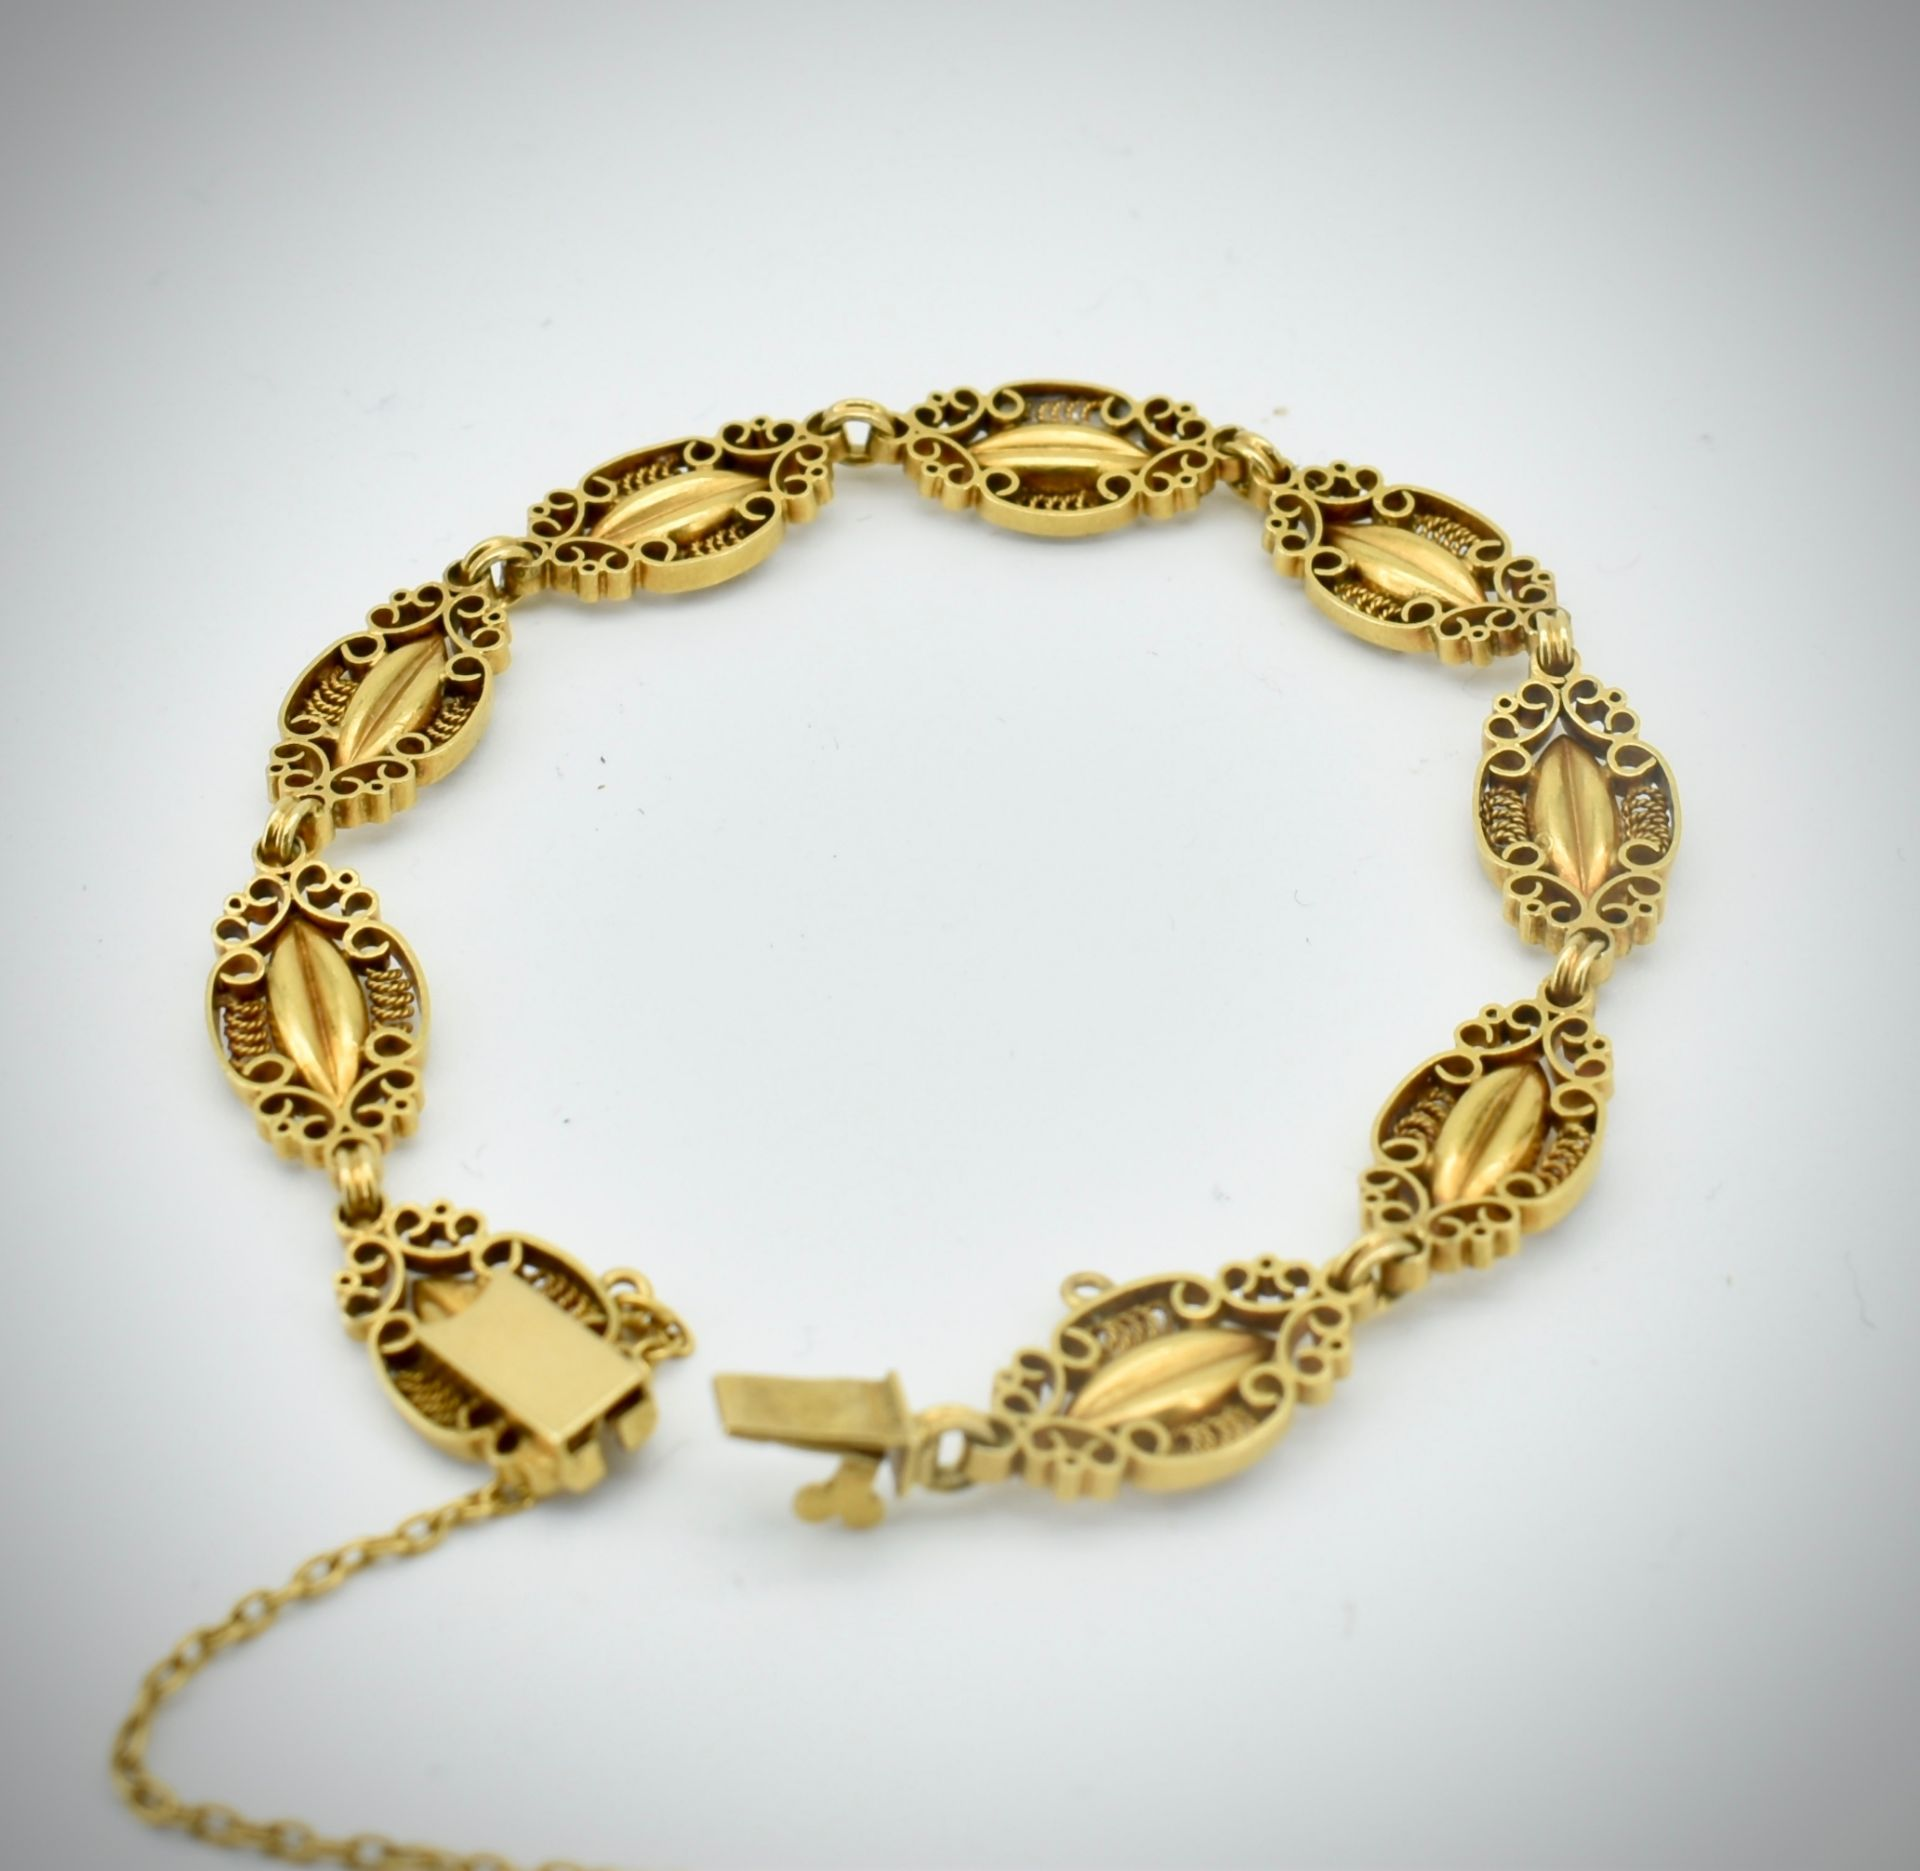 French 18ct Gold Art Nouveau Bracelet. - Image 6 of 6